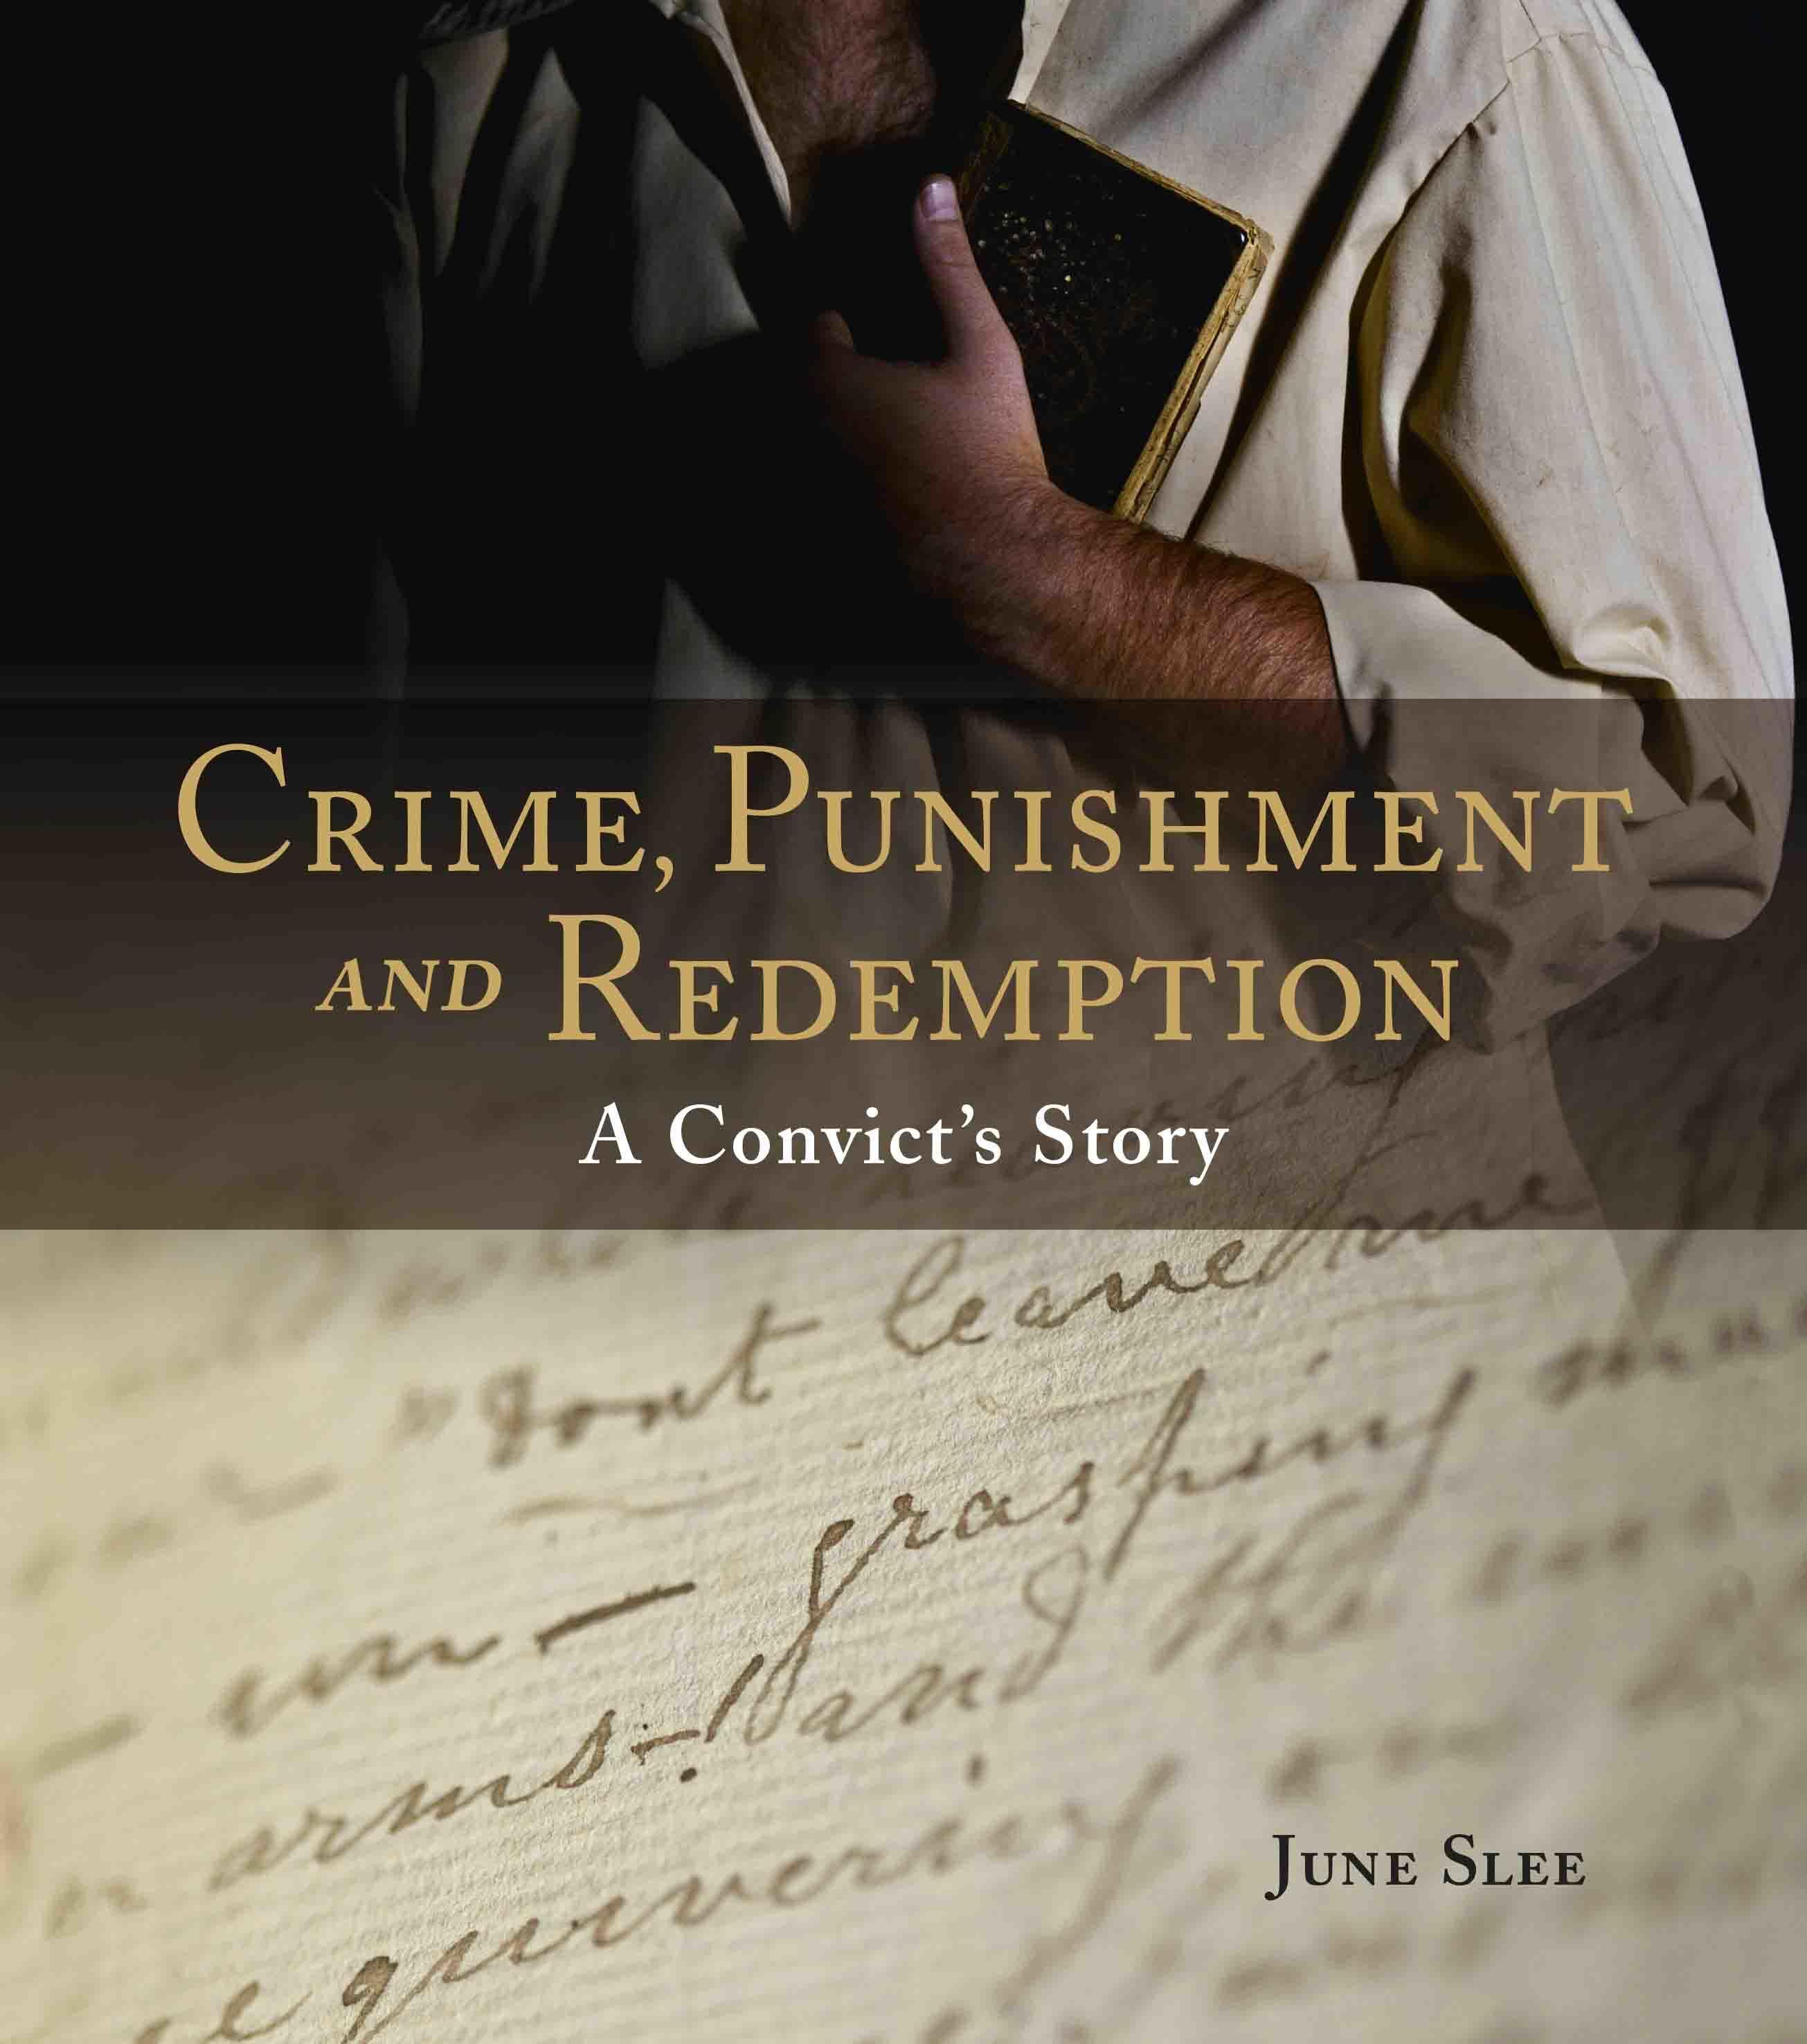 Crime, Punishment and Redemption: A Convict's Story